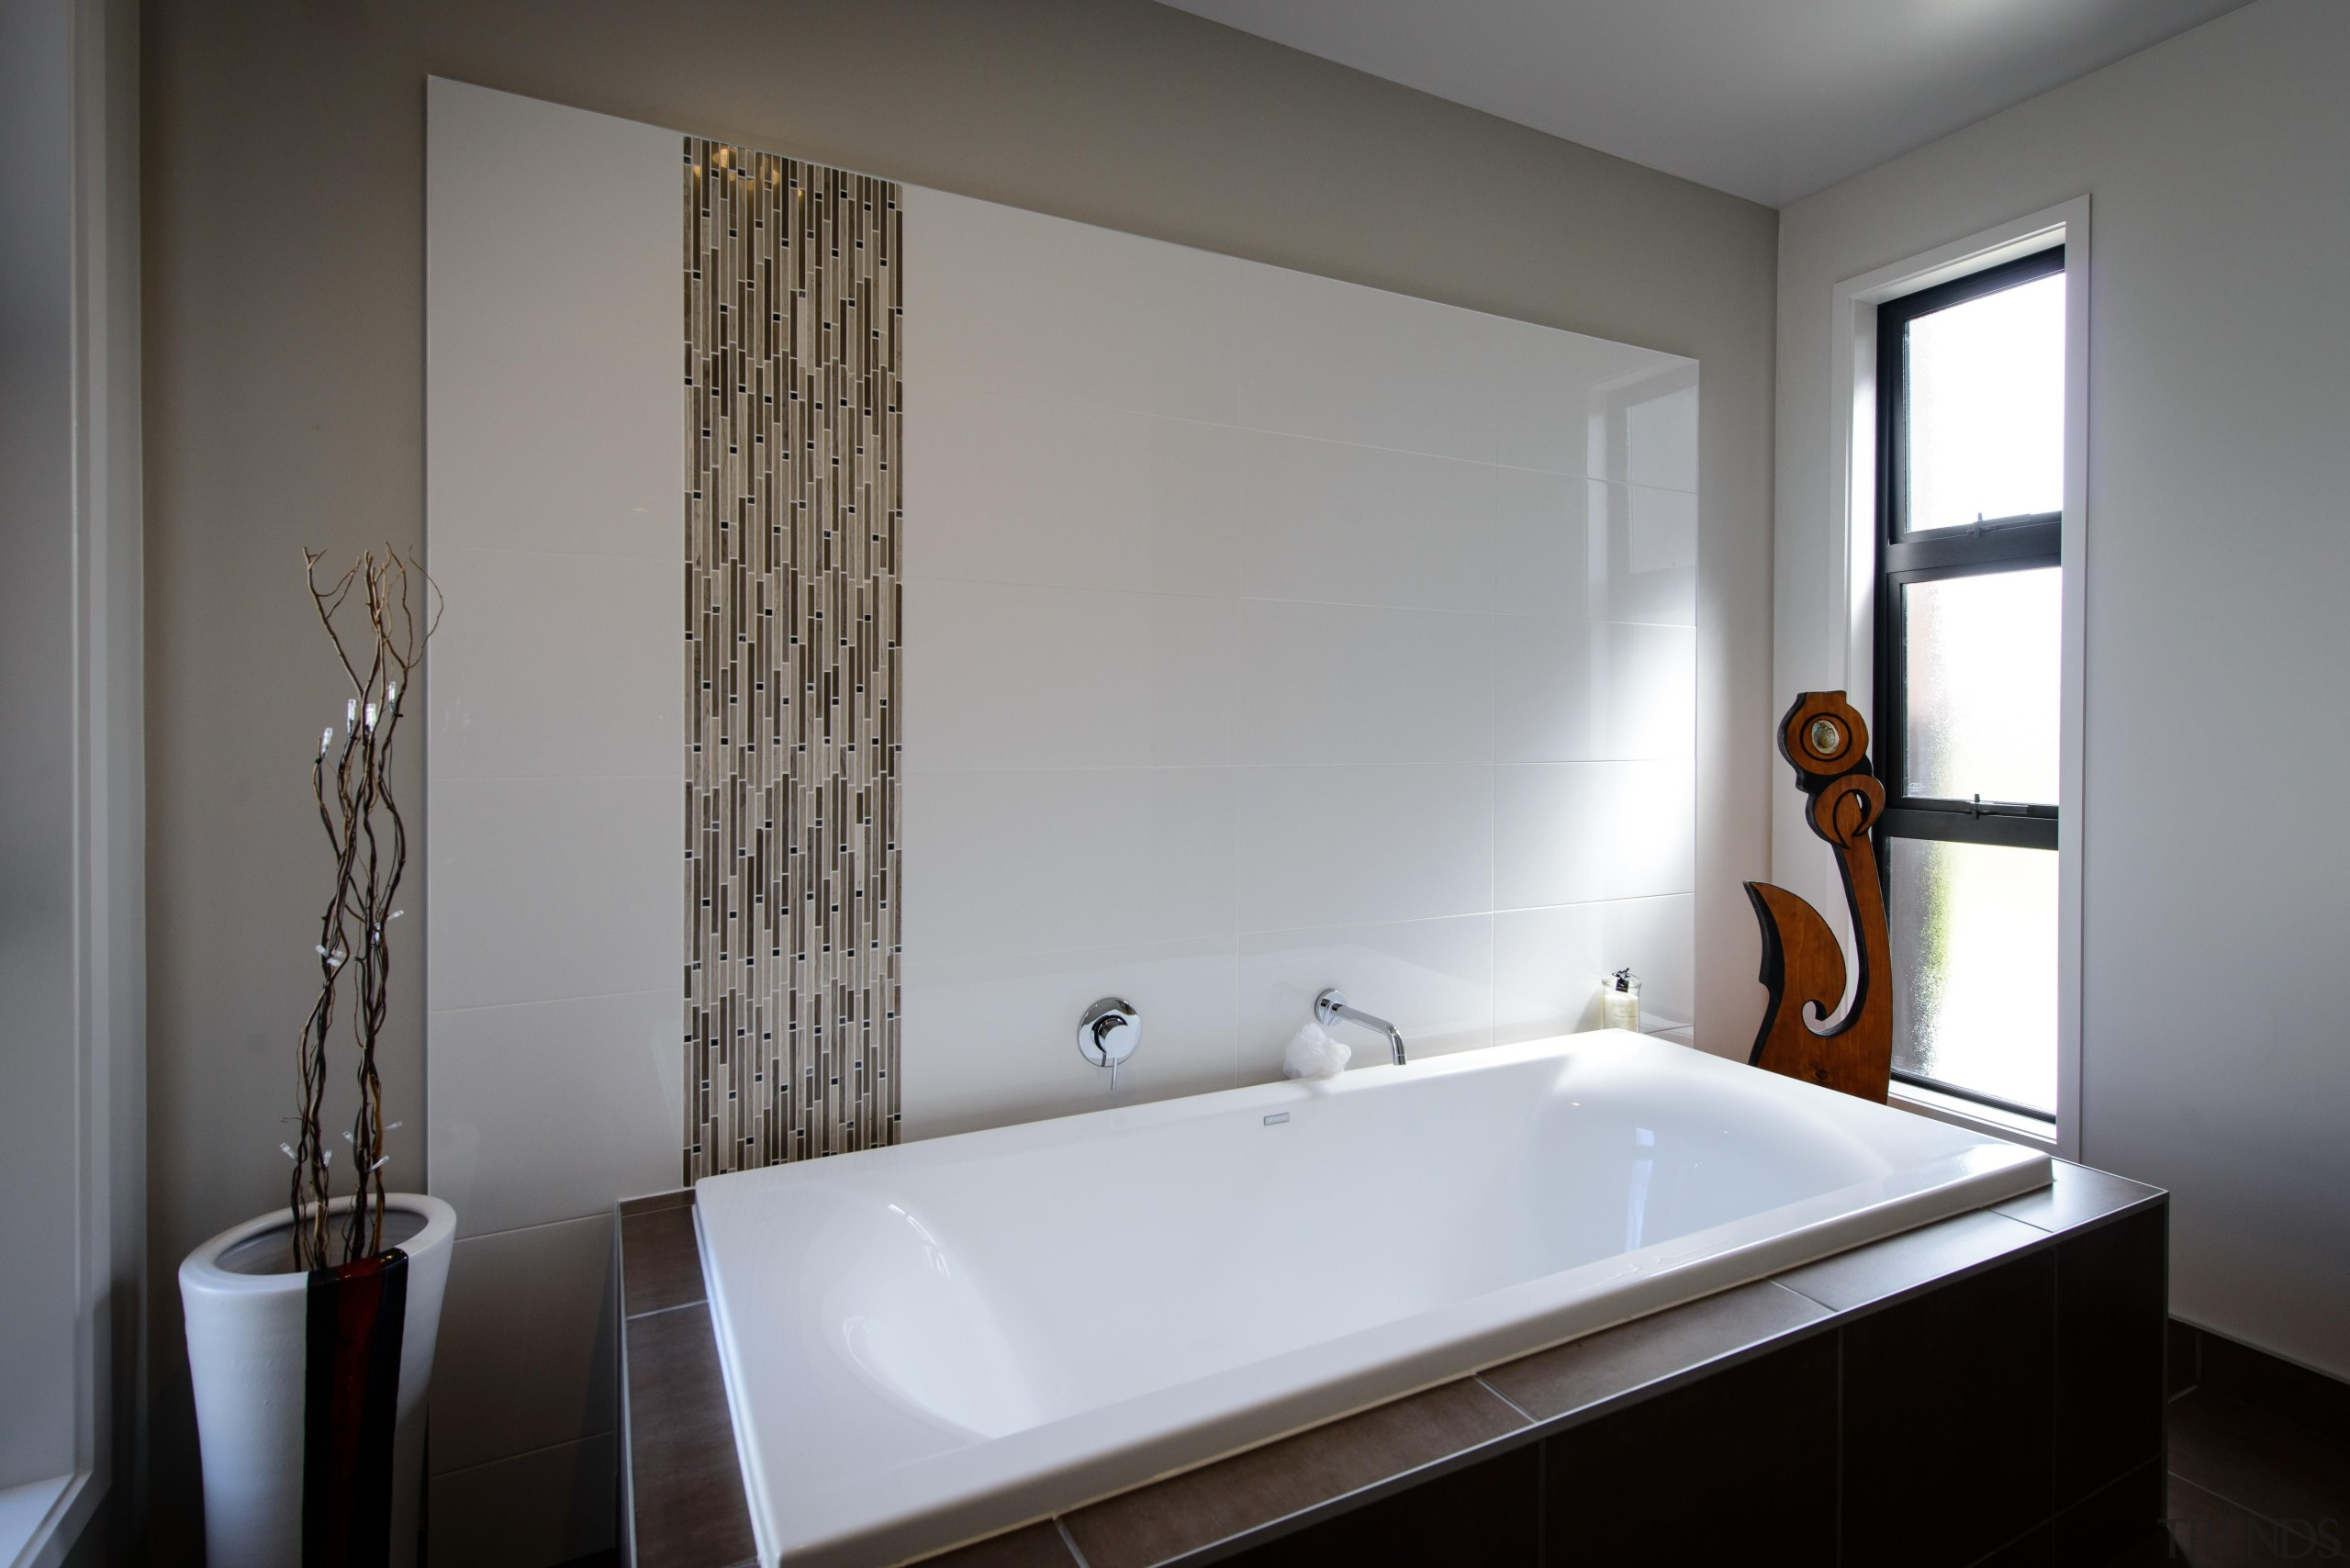 Relax in this bath, set behind a dividing bathroom, bathtub, interior design, plumbing fixture, room, window, gray